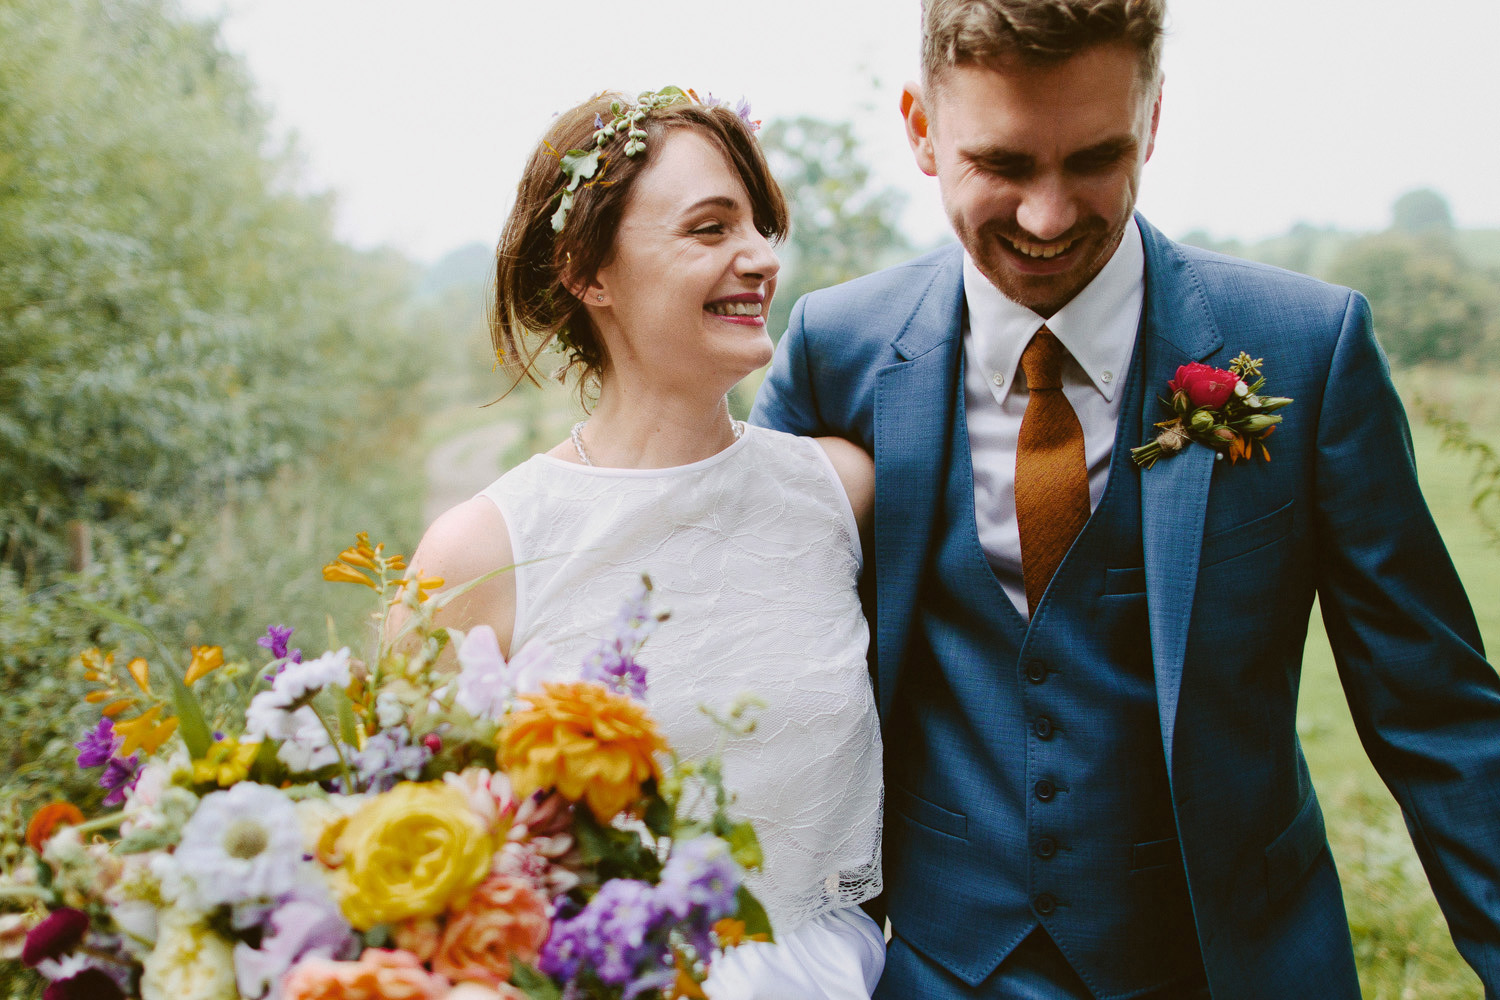 bride and groom walking arm in arm with colourful bouquet